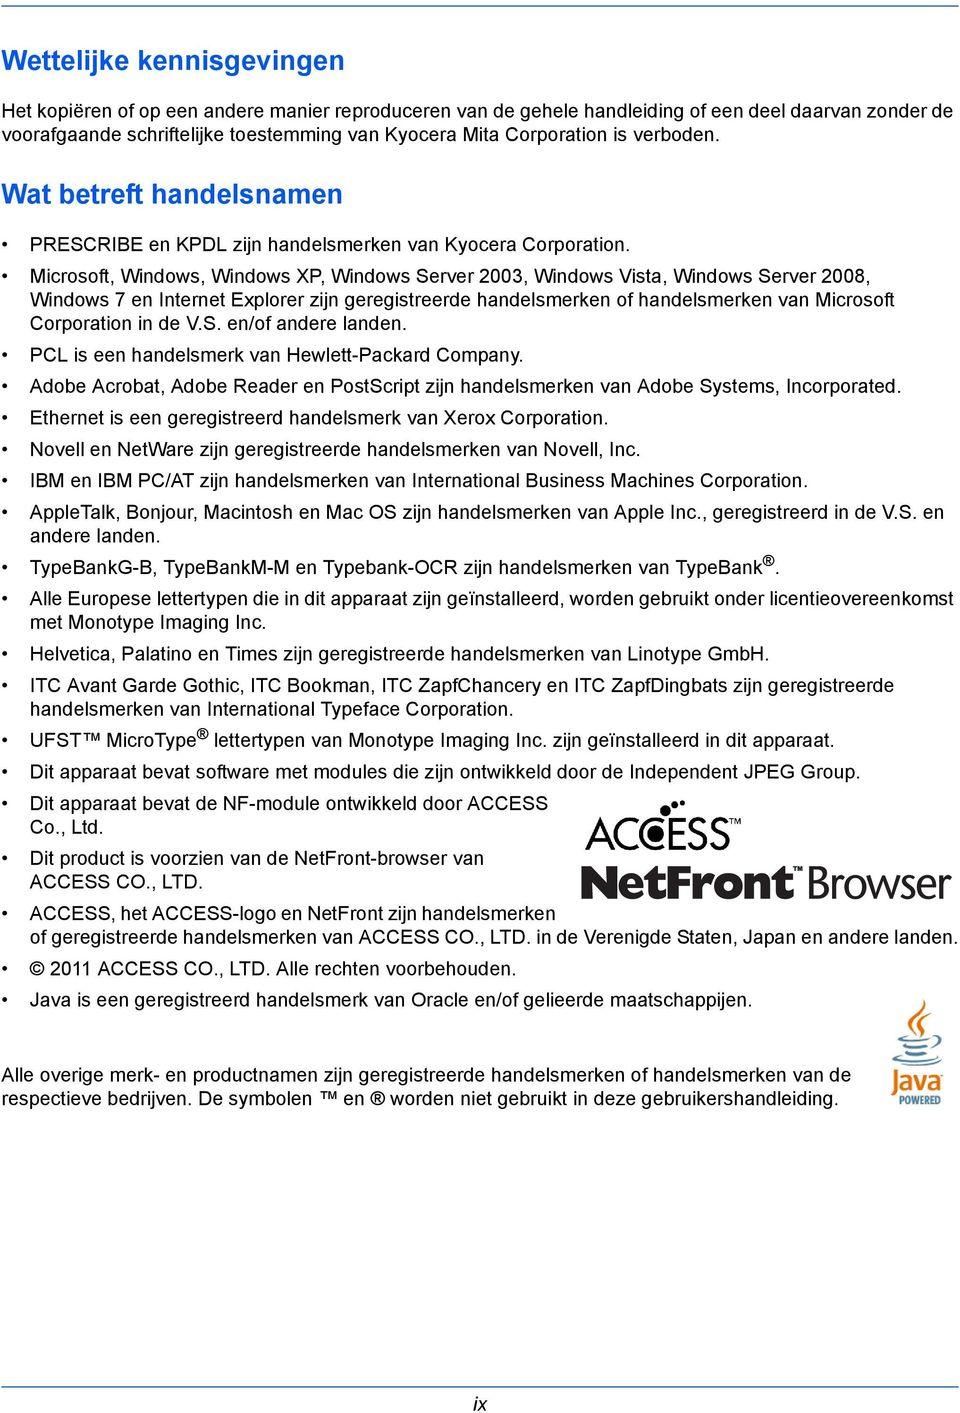 Microsoft, Windows, Windows XP, Windows Server 2003, Windows Vista, Windows Server 2008, Windows 7 en Internet Explorer zijn geregistreerde handelsmerken of handelsmerken van Microsoft Corporation in